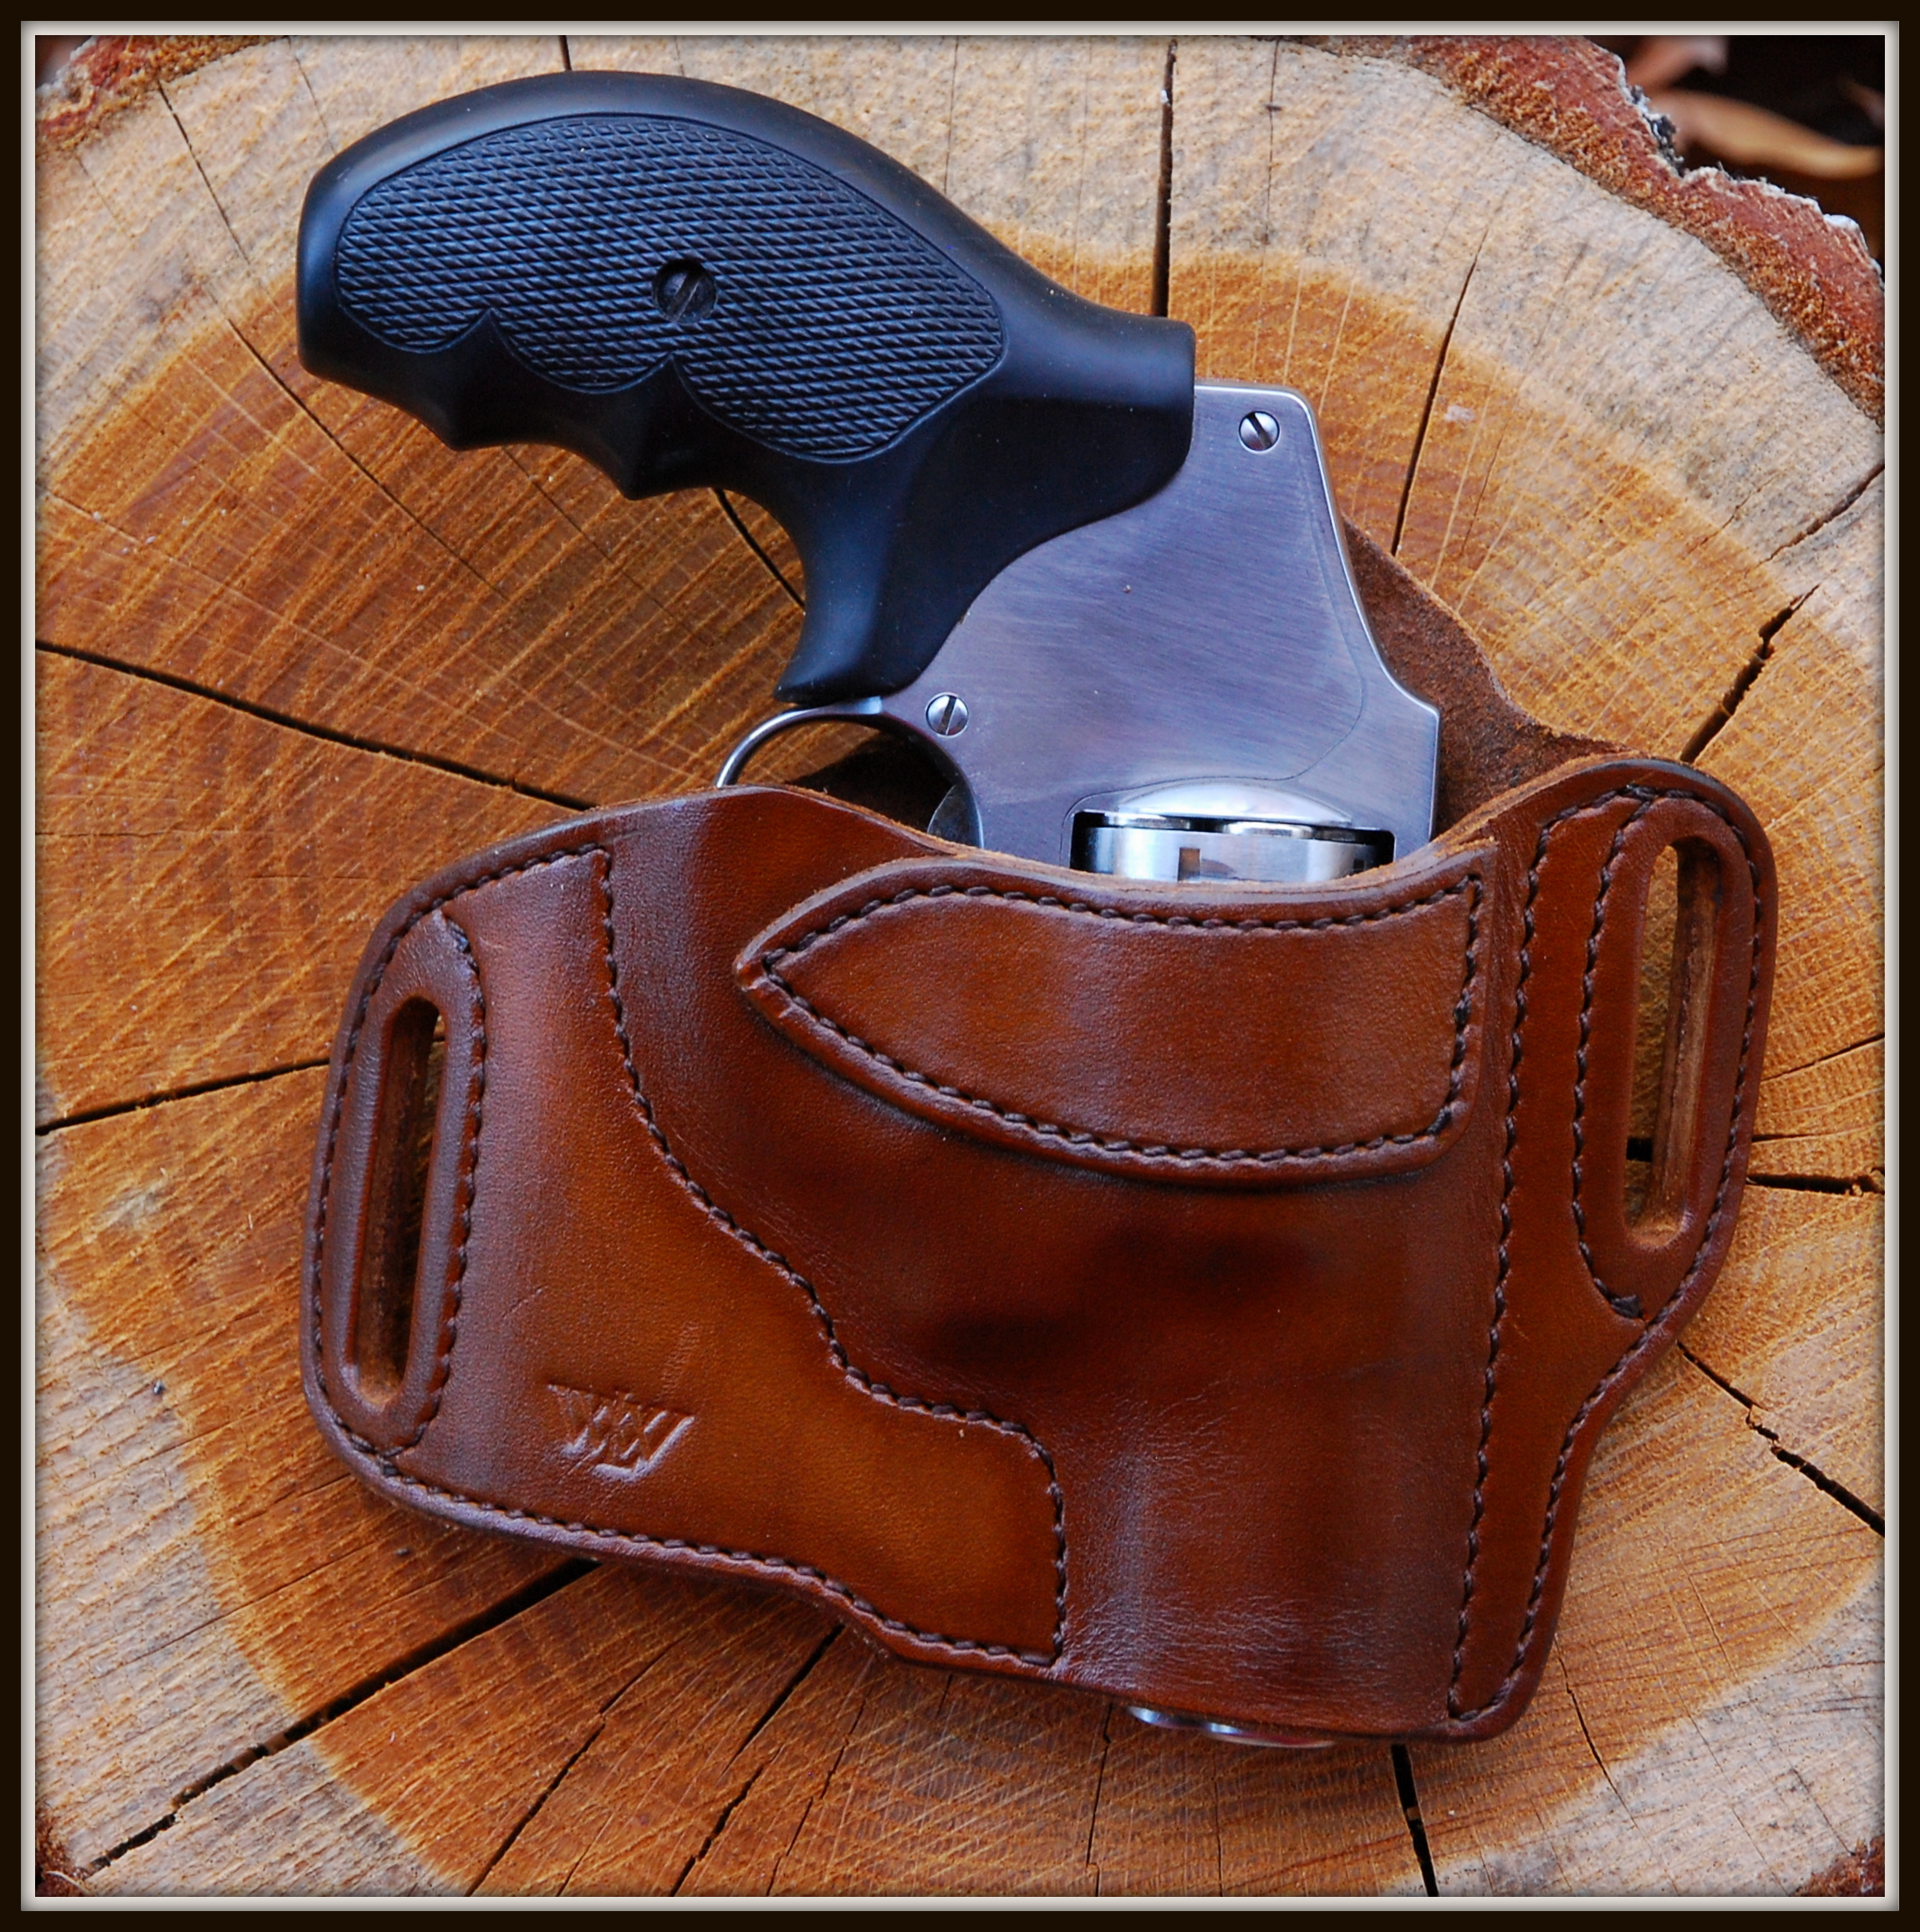 Why can't I find an OWB holster for a Kahr CW9??